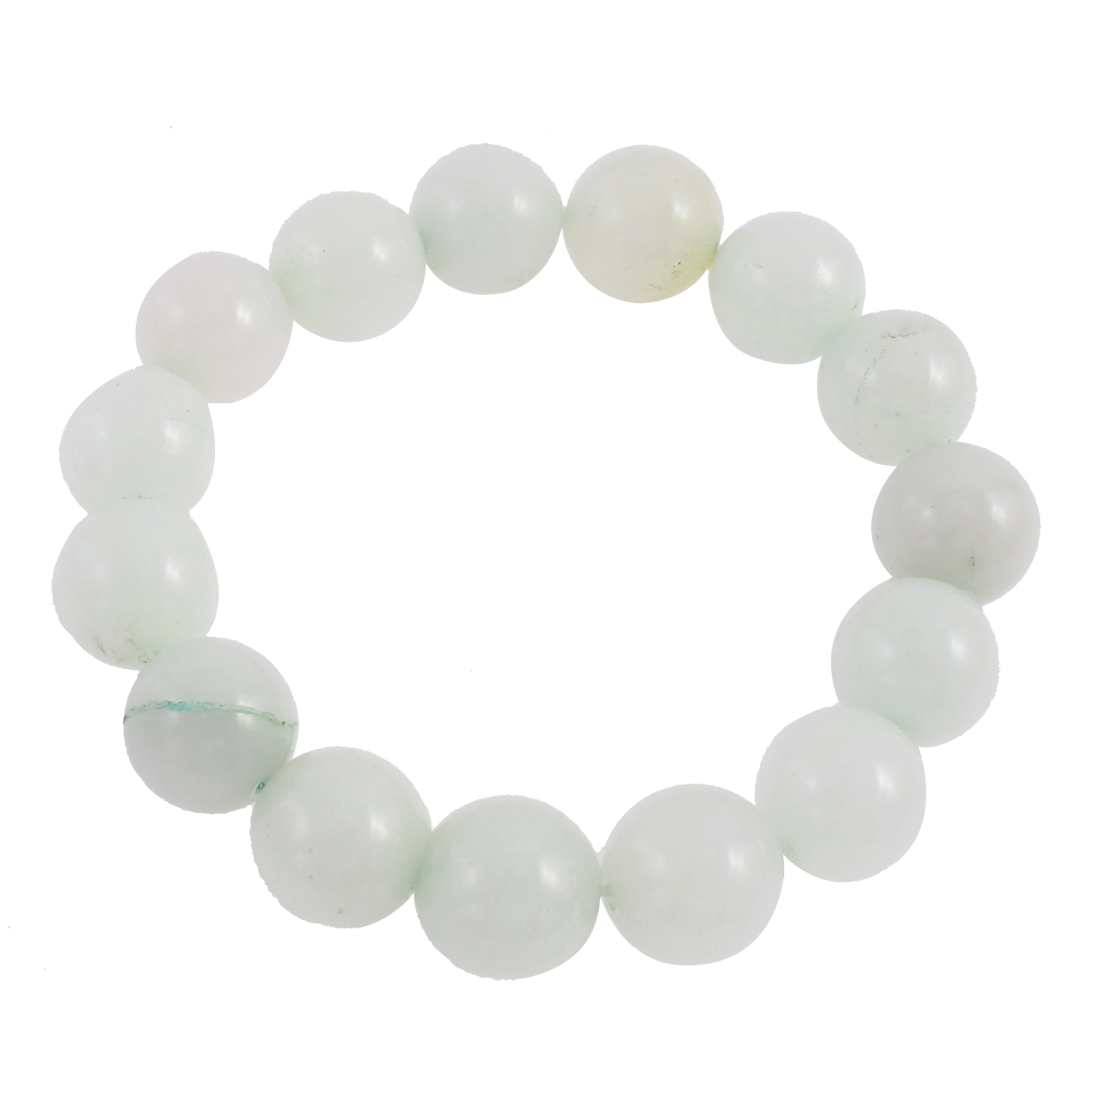 Lady Round Faux Jade Bead Linked Elastic Wrist Bracelet Bangle Decor White